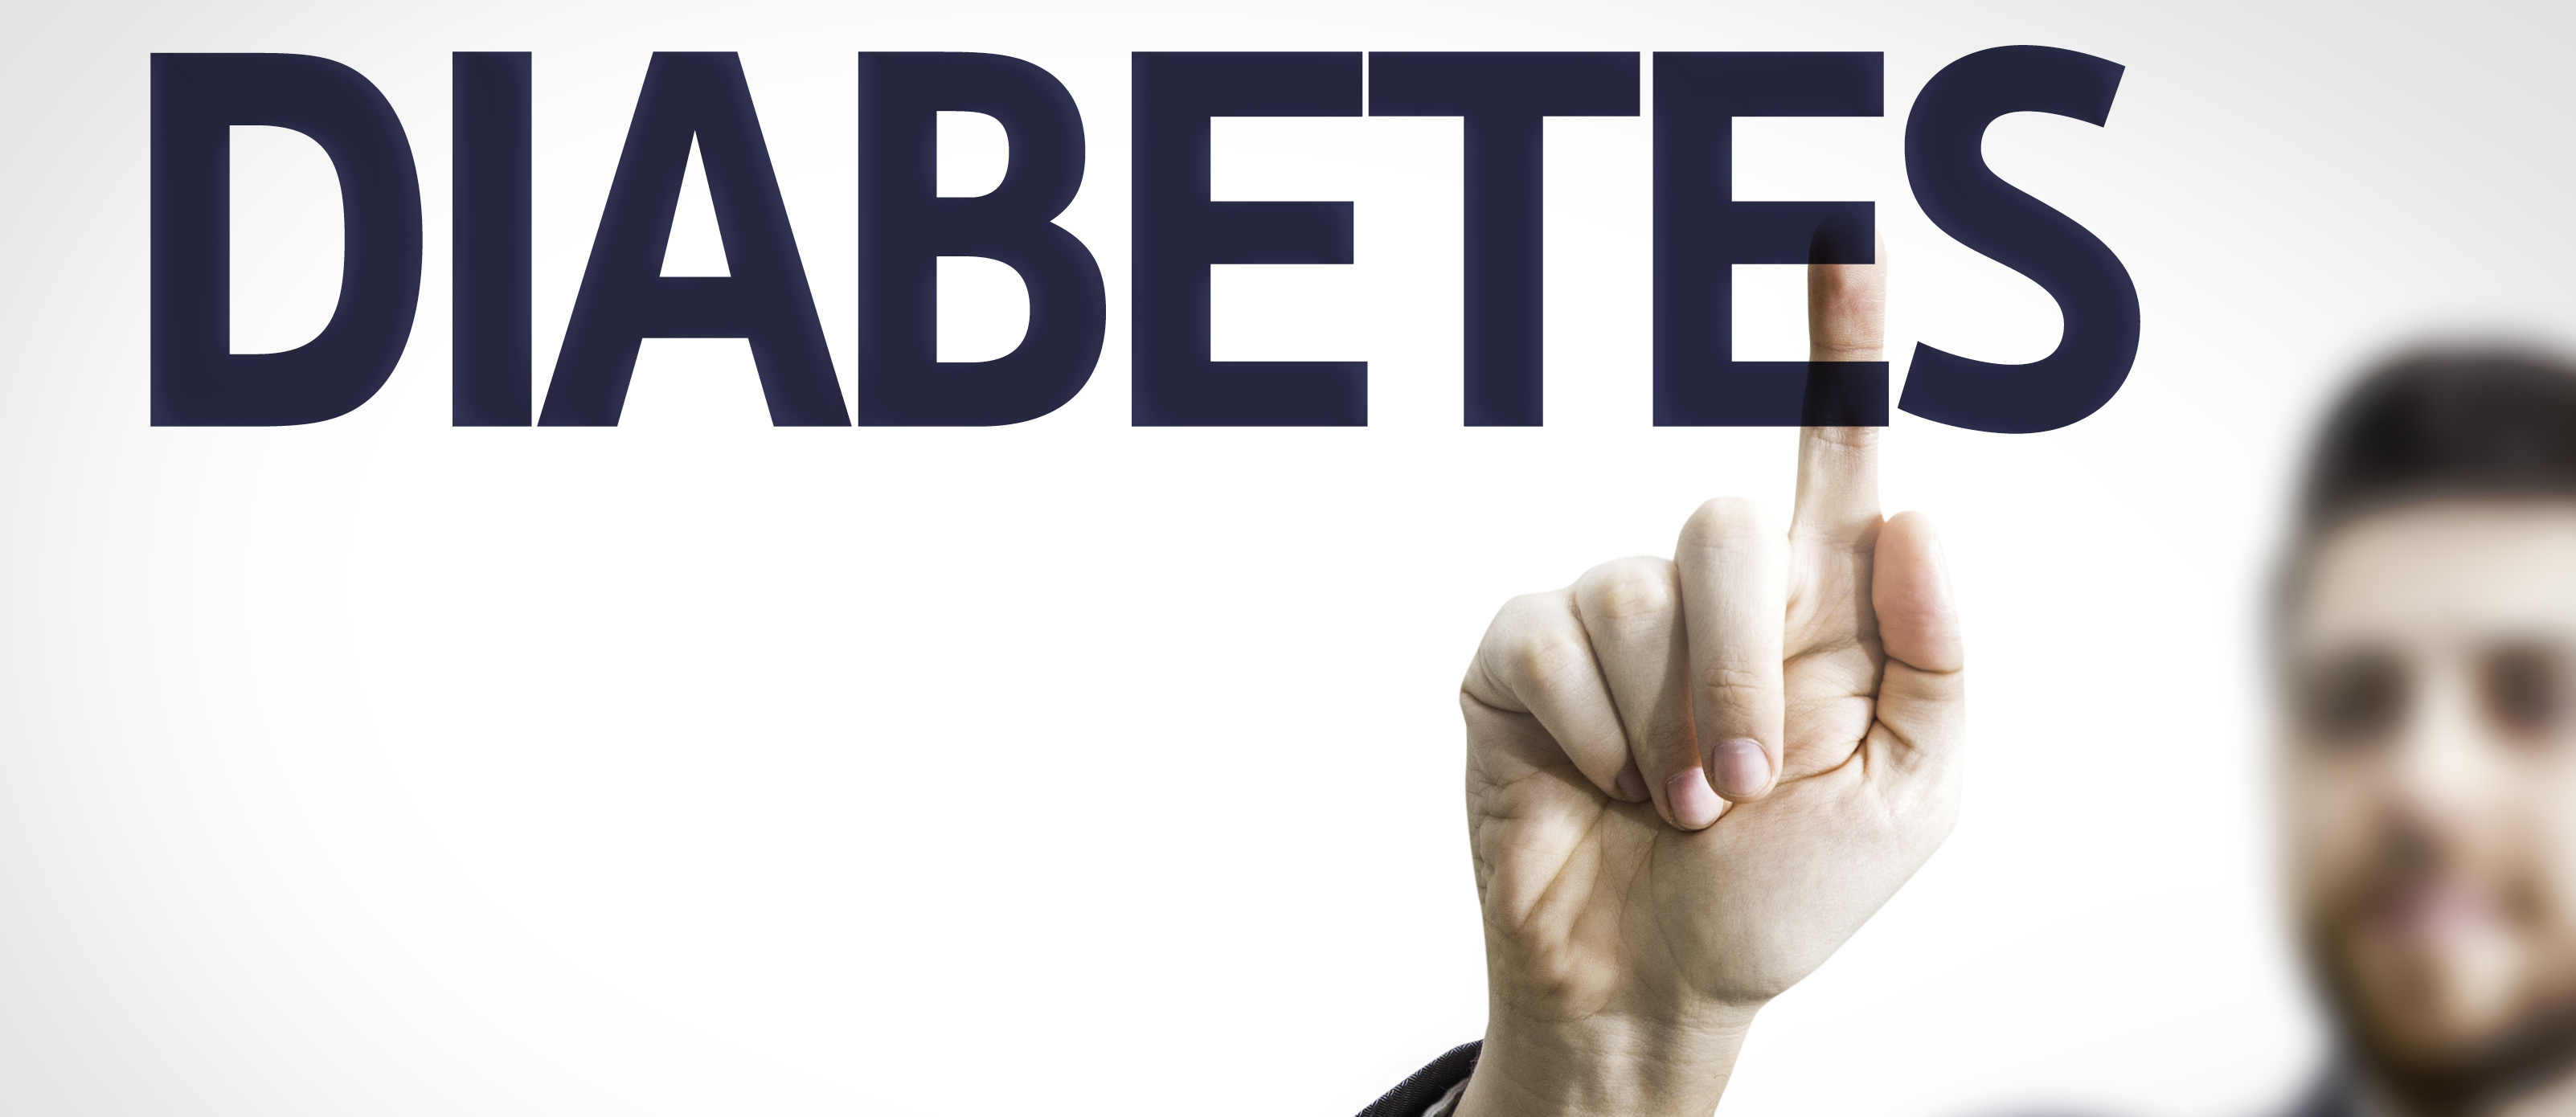 What Should Pharmacists Advise Diabetes Patients About Lifestyle Modifications?